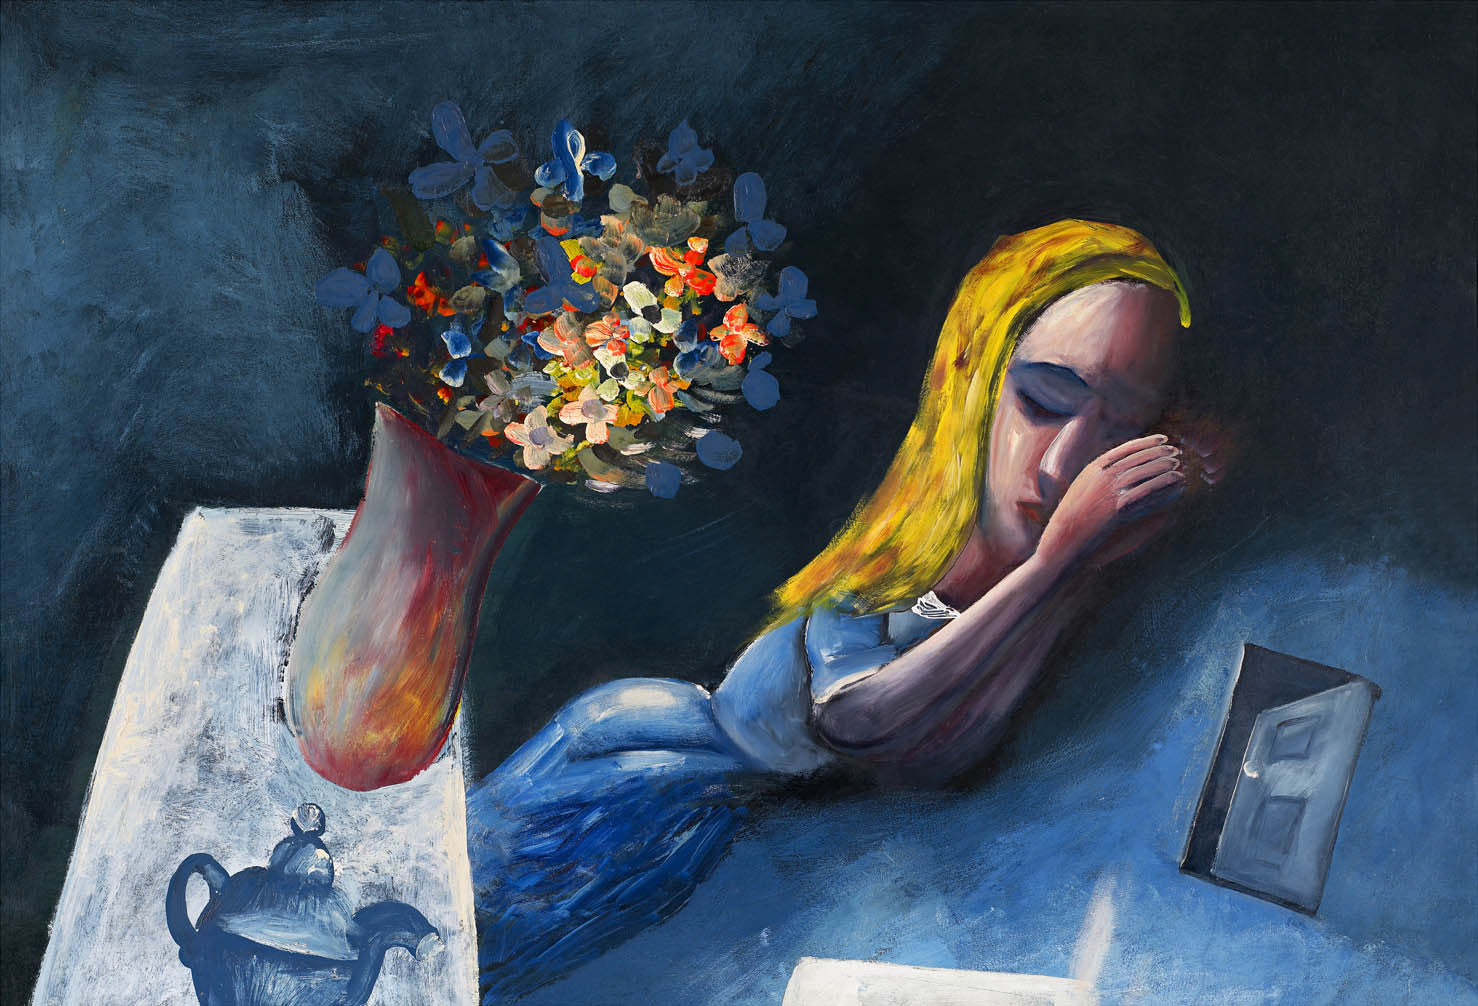 Charles Blackman 'Dreaming Alice' - * ALMOST SOLD OUT * - pigment print on paper